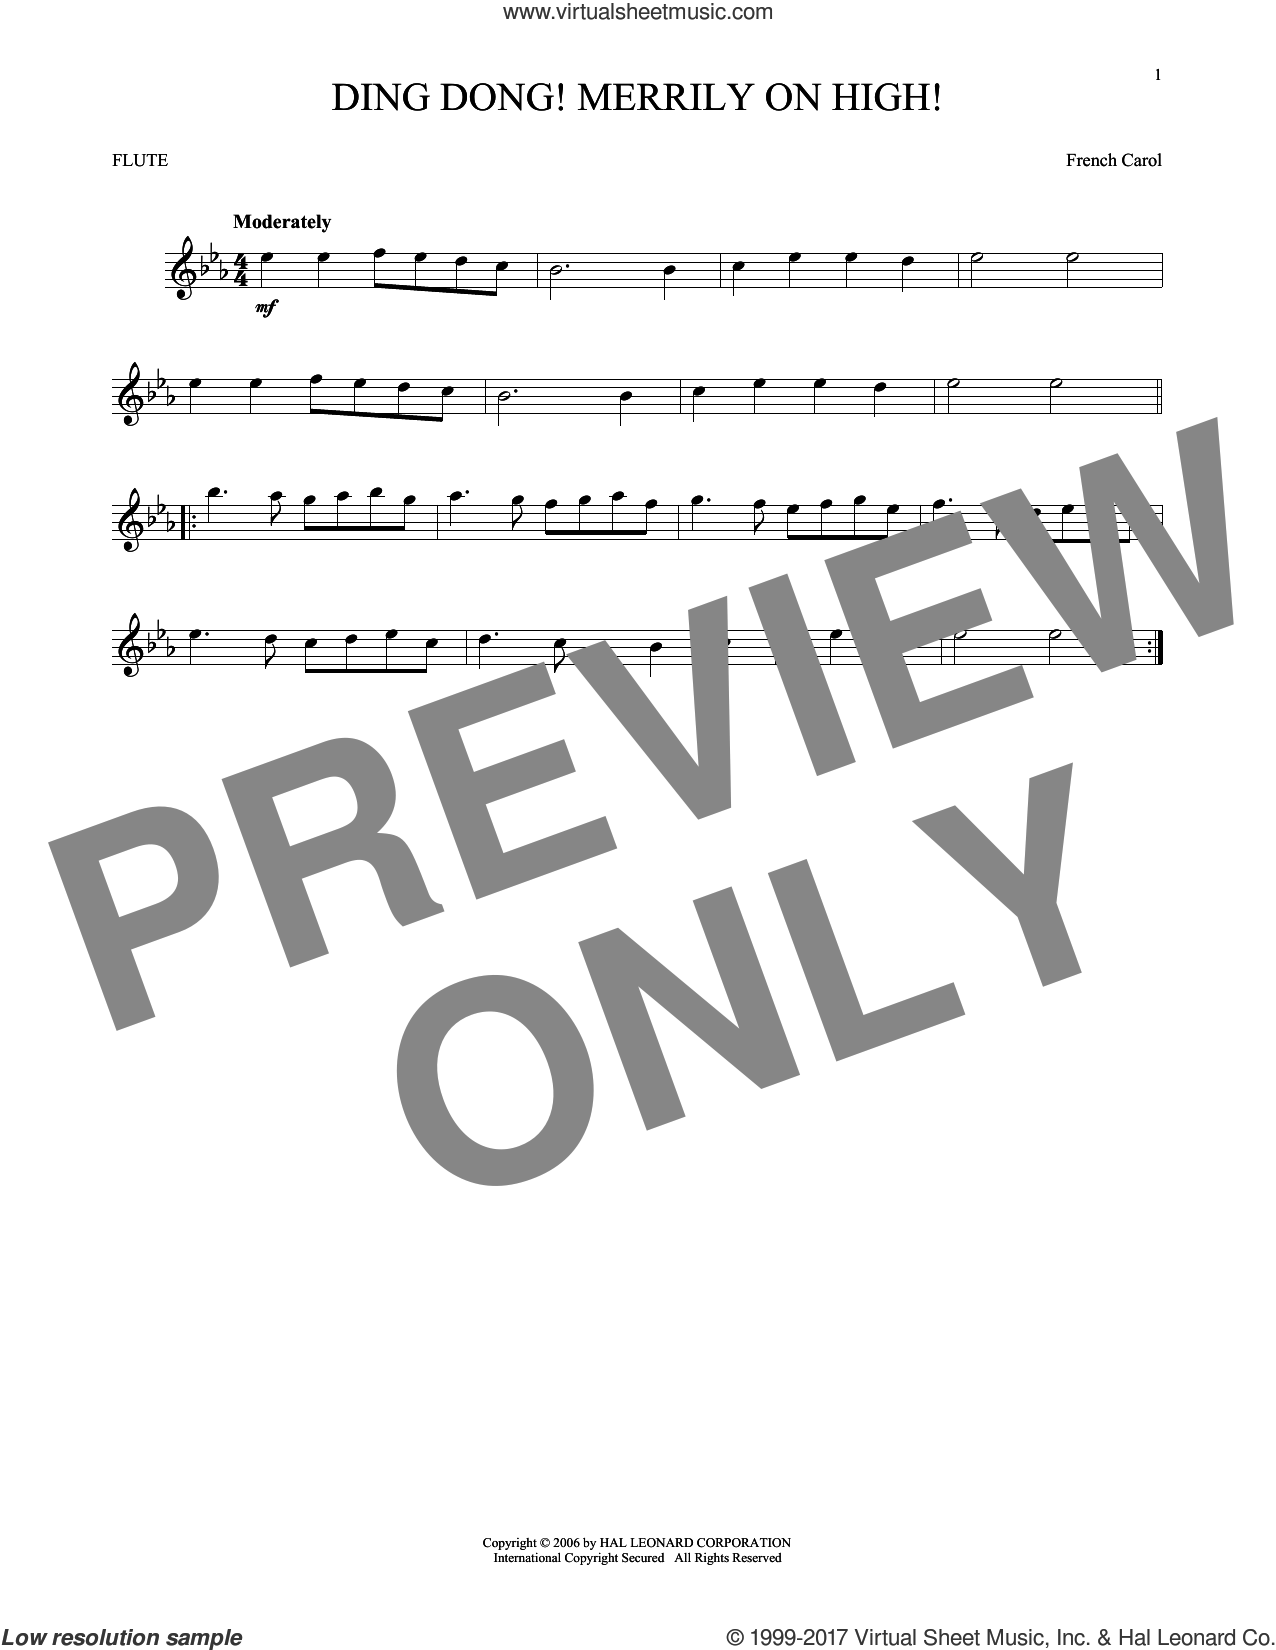 Ding Dong! Merrily On High! sheet music for flute solo, intermediate skill level